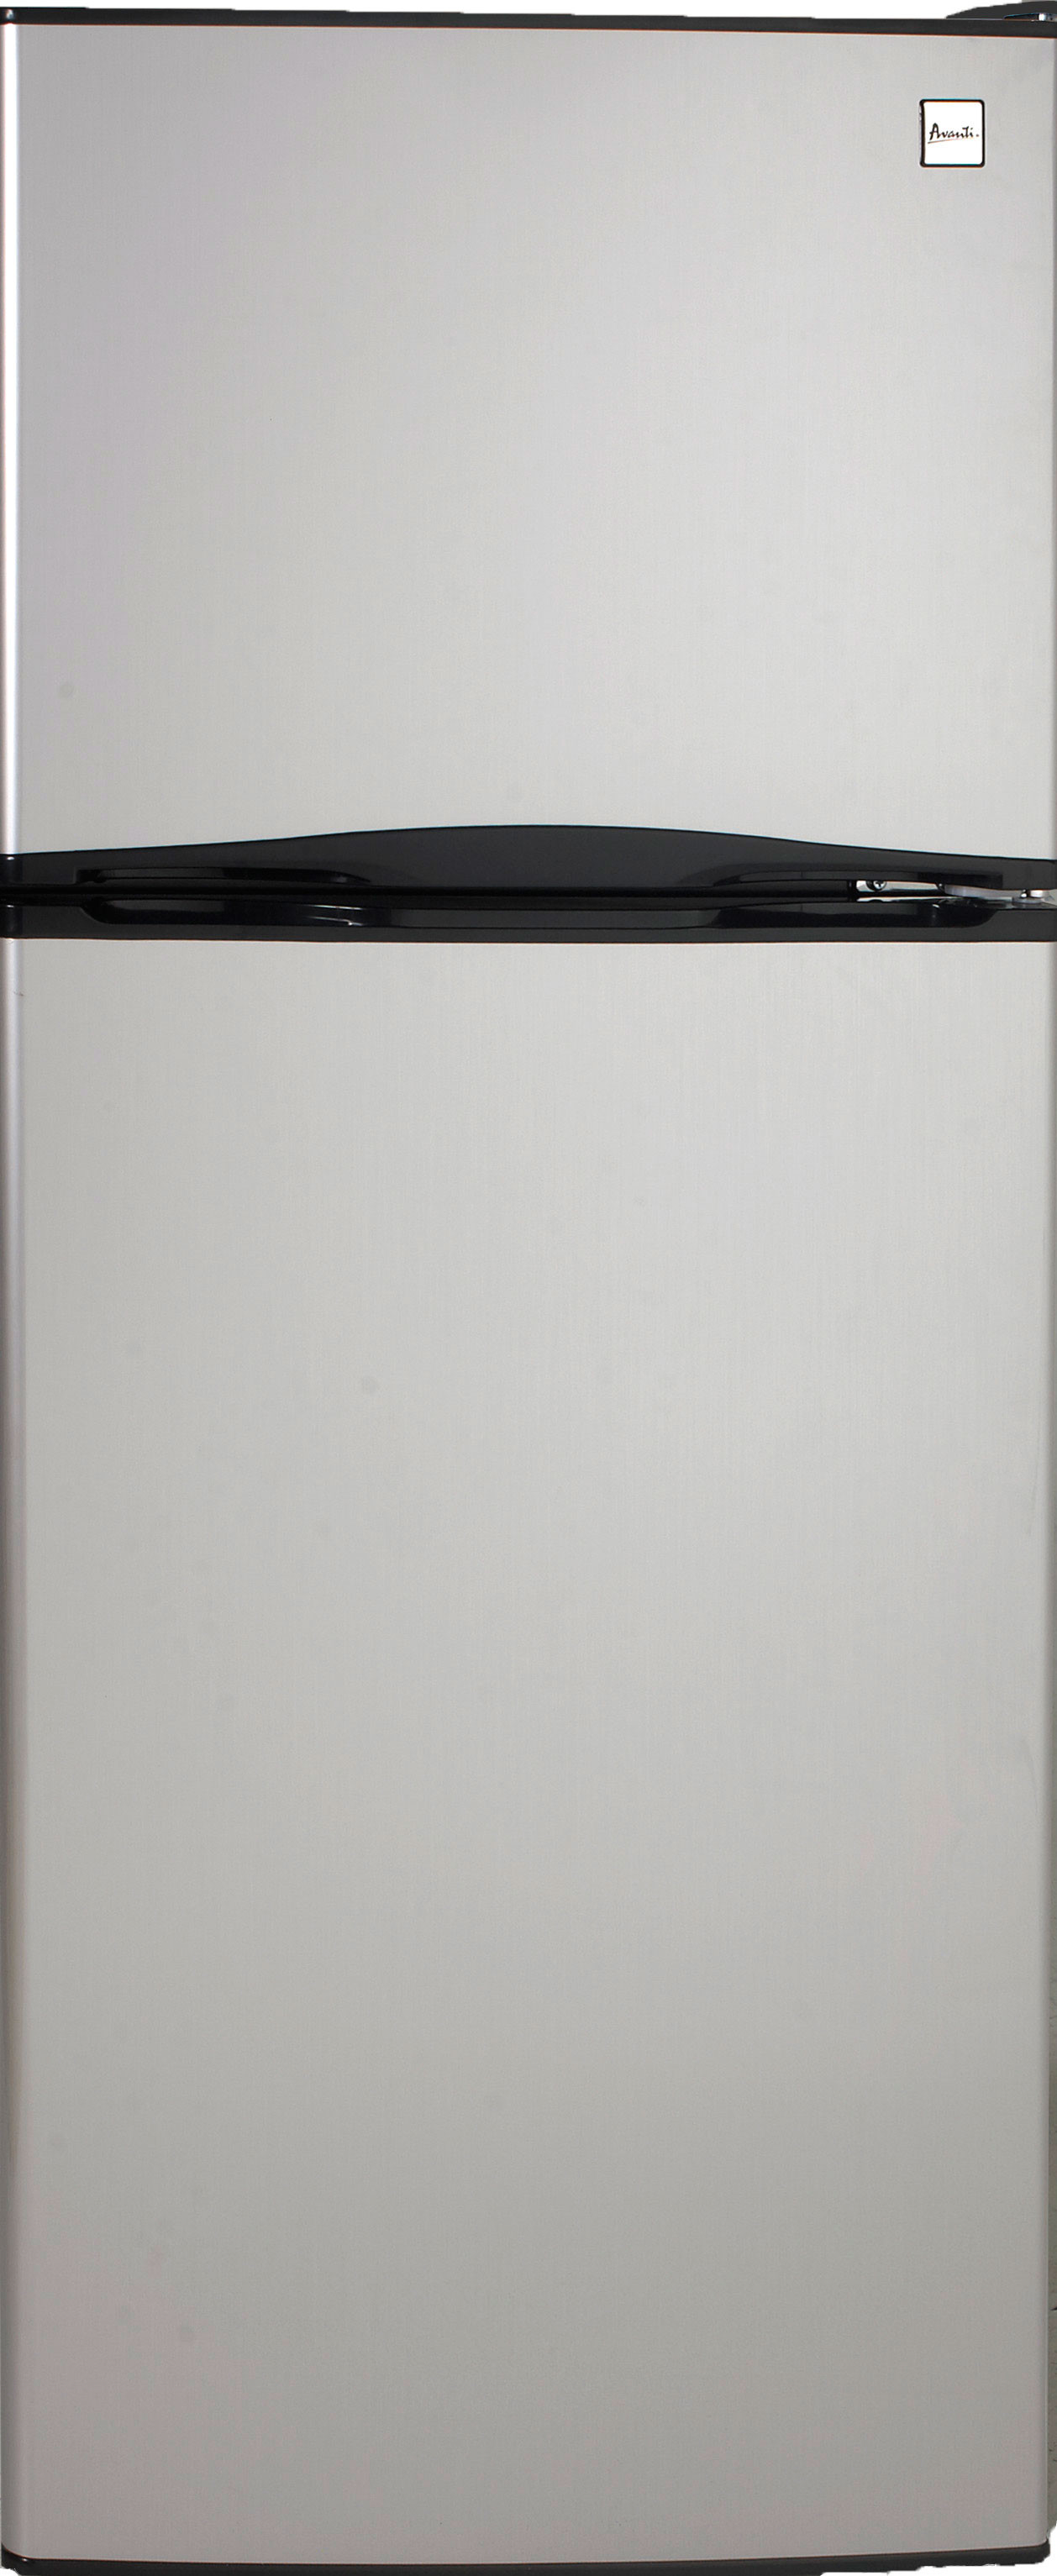 Countertop Freezer Canada | Avanti Refrigerator | Compact Side By Side Refrigerator